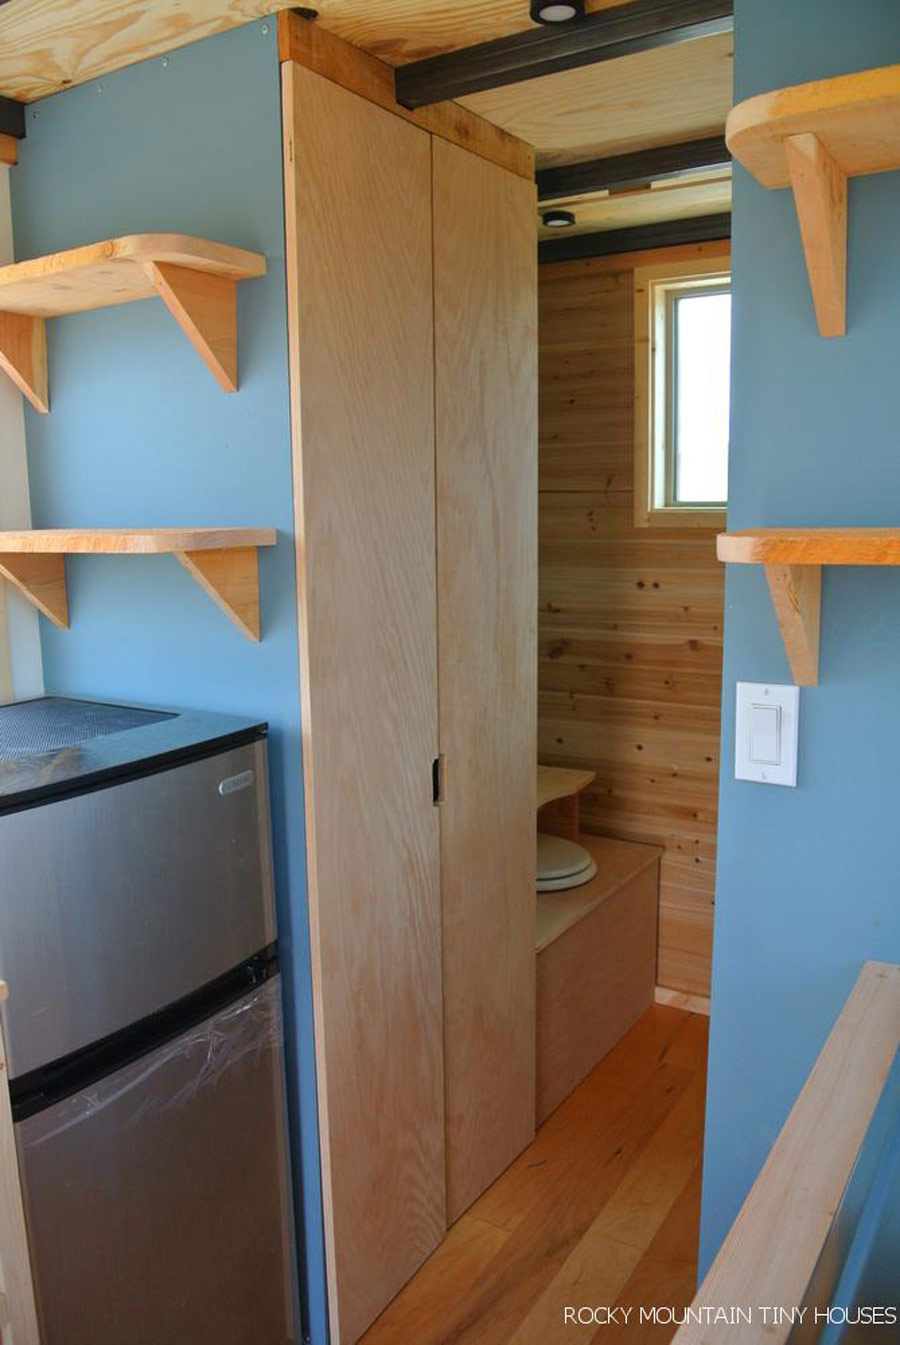 front-range-rocky-mountain-tiny-houses-4